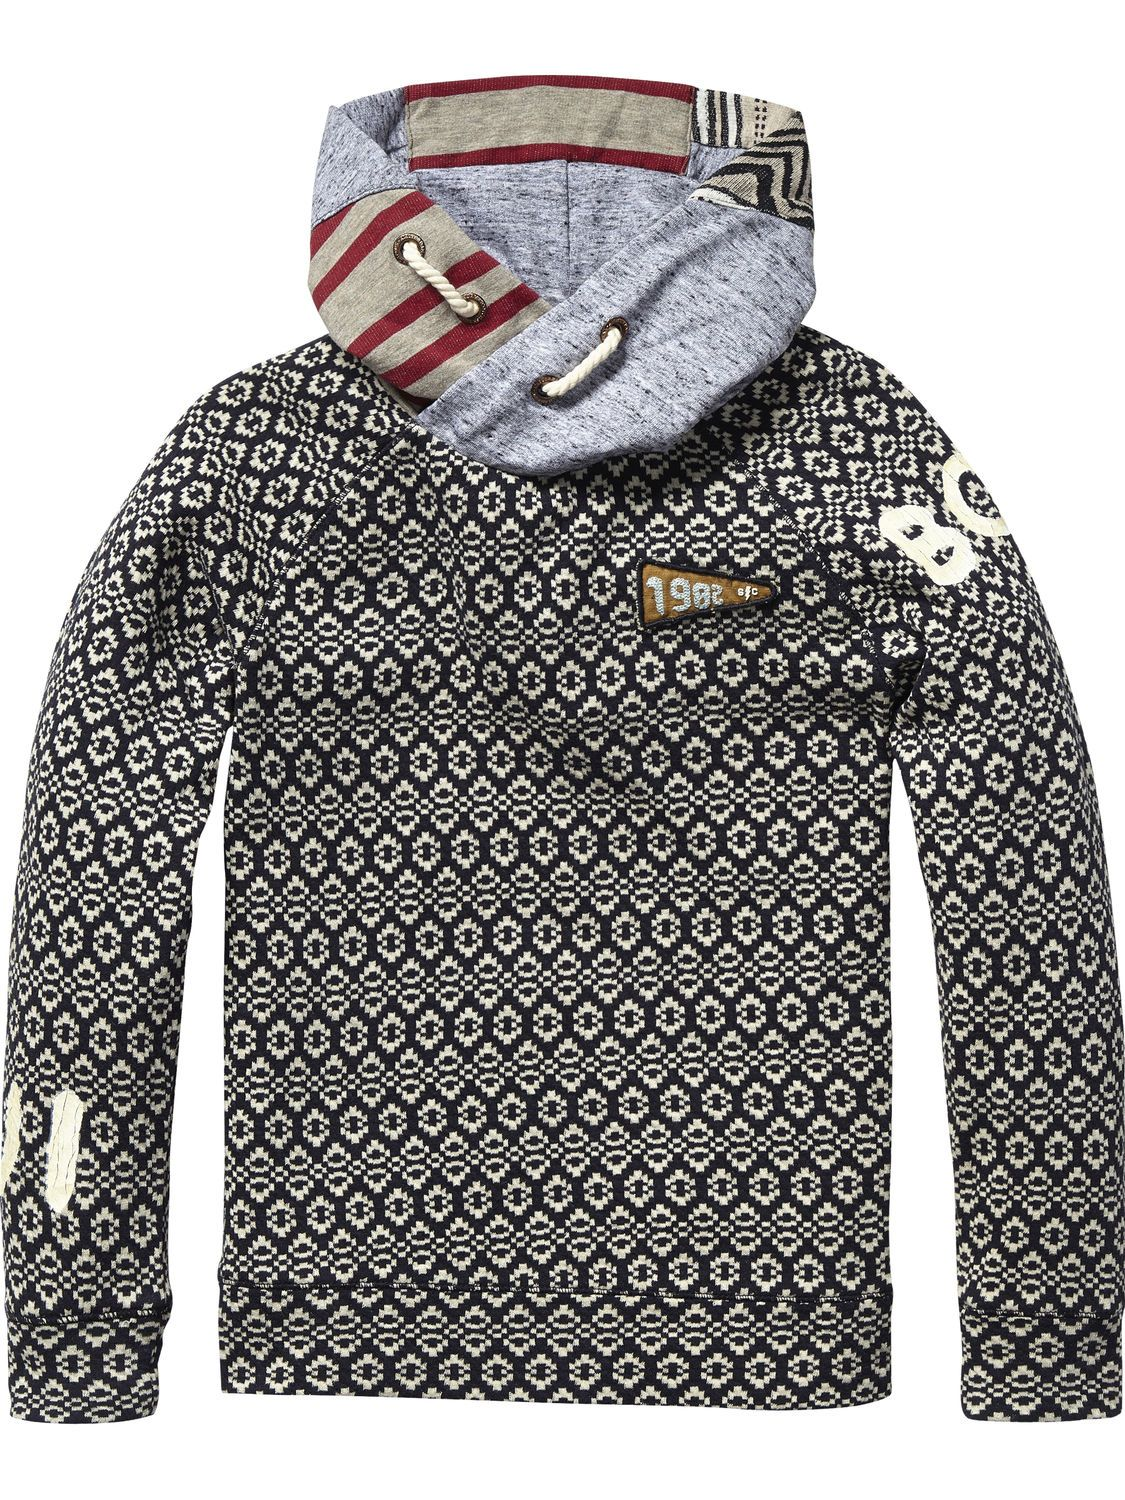 Mix & Match Hooded Sweater | sweat | Boys Clothing at Scotch & Soda